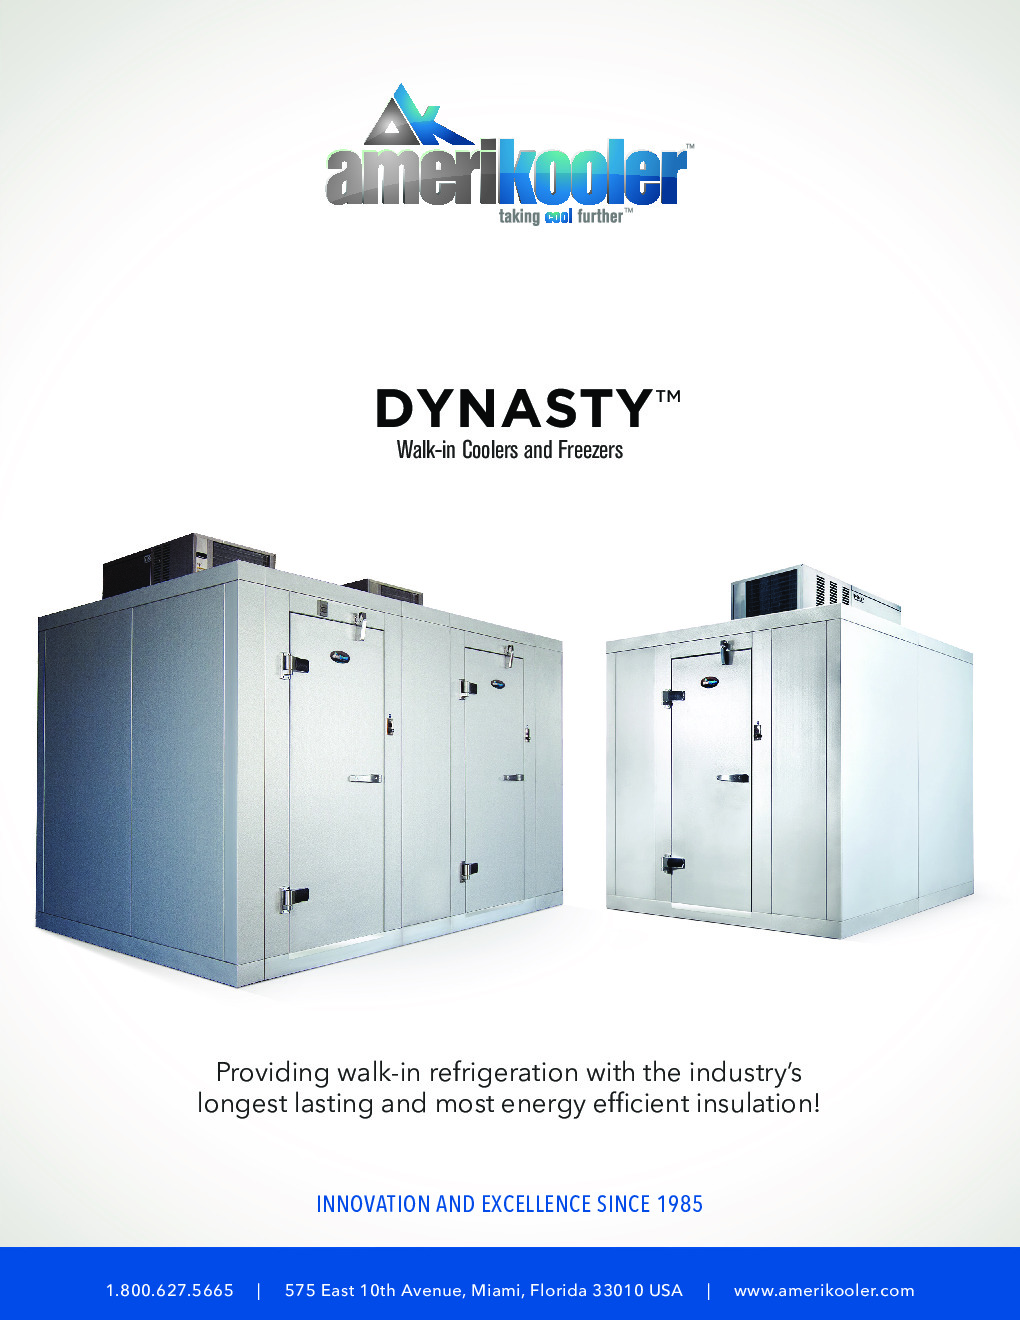 AmeriKooler DW101177N-4/7-SC 10' X 11' Walk-In Cooler, 7' L Cooler without Floor and 4' L Freezer, Self Contained